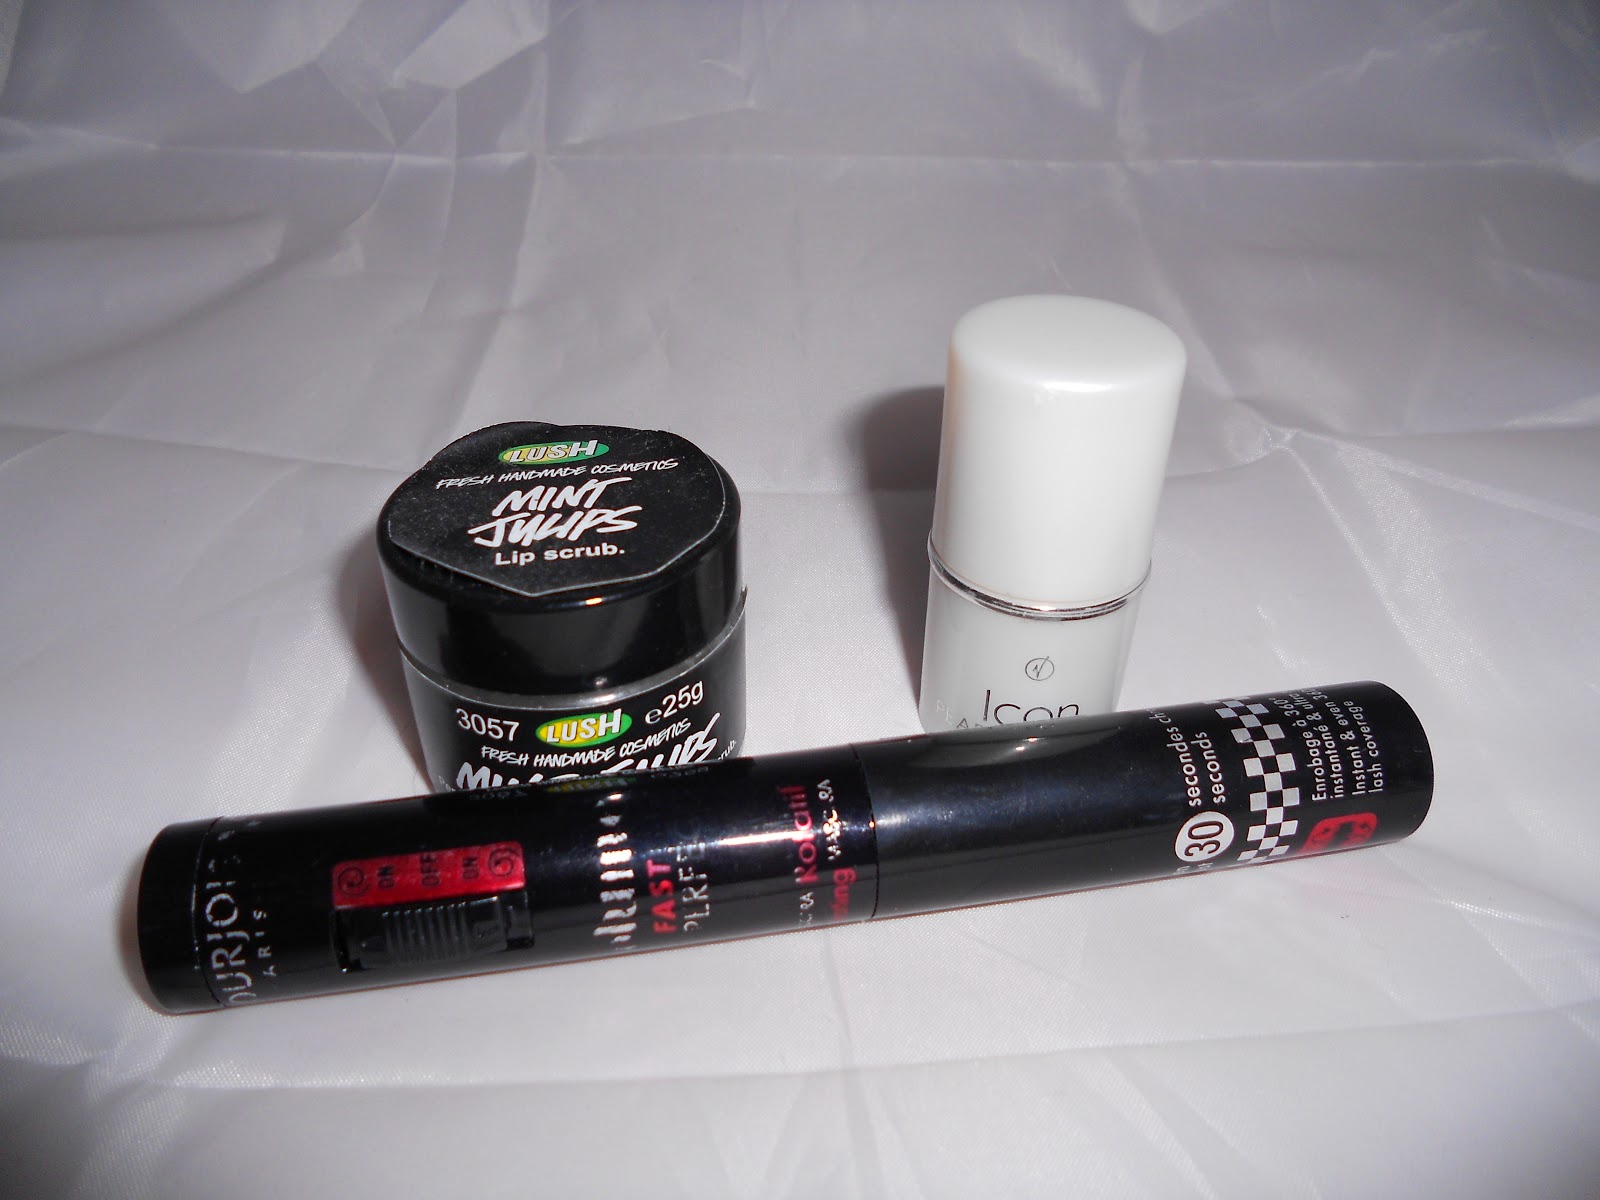 Lush lip scrub, Virgin Vie highlighter and Bourjois mascara